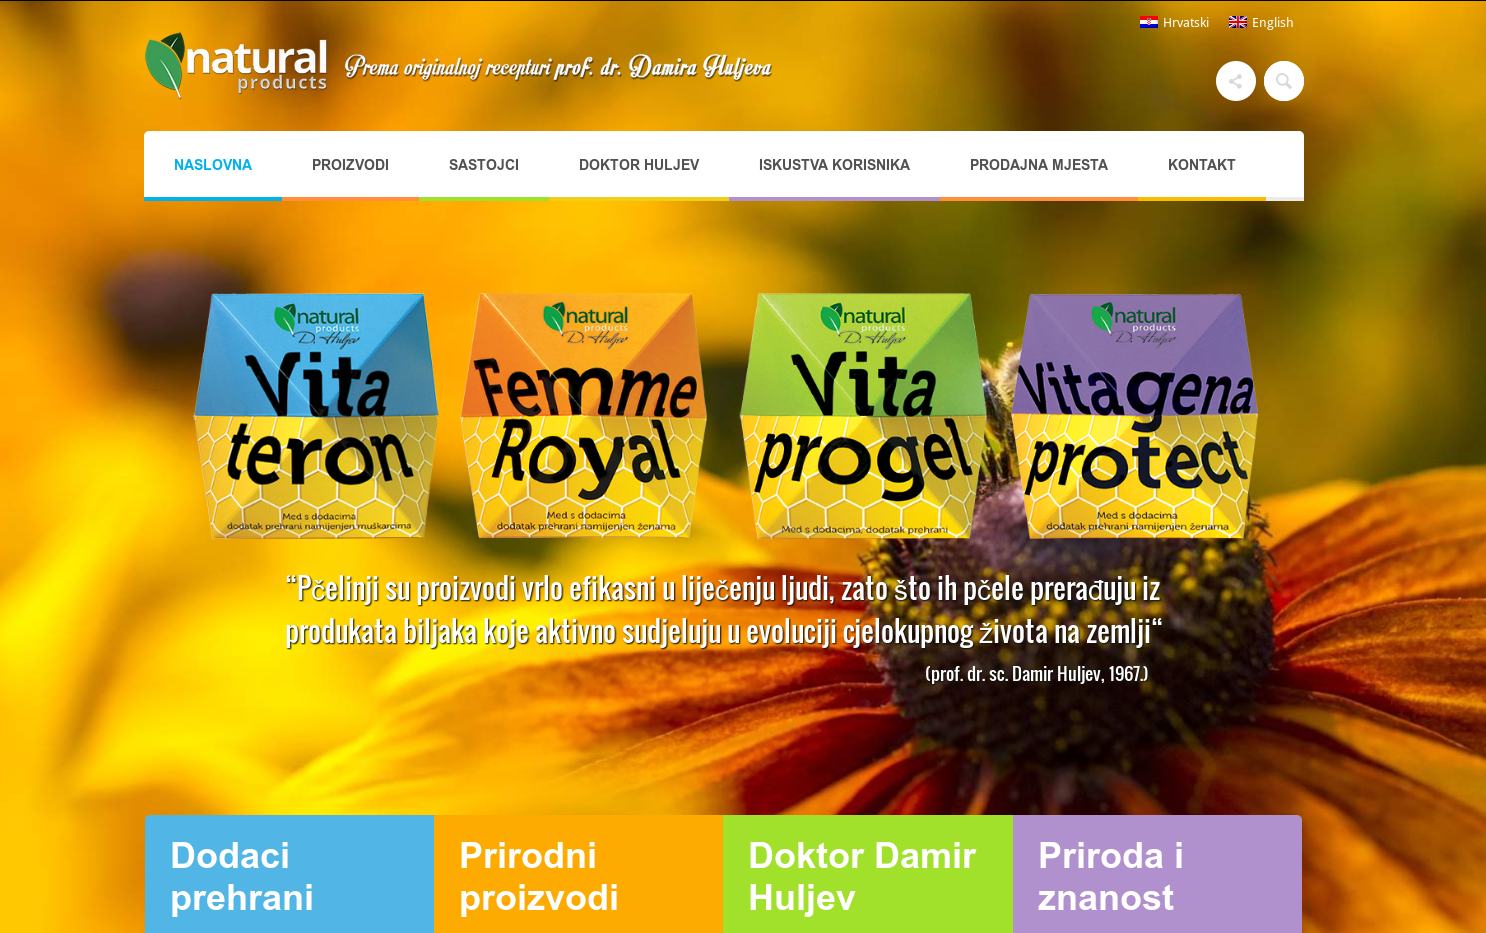 naturalproducts.eu